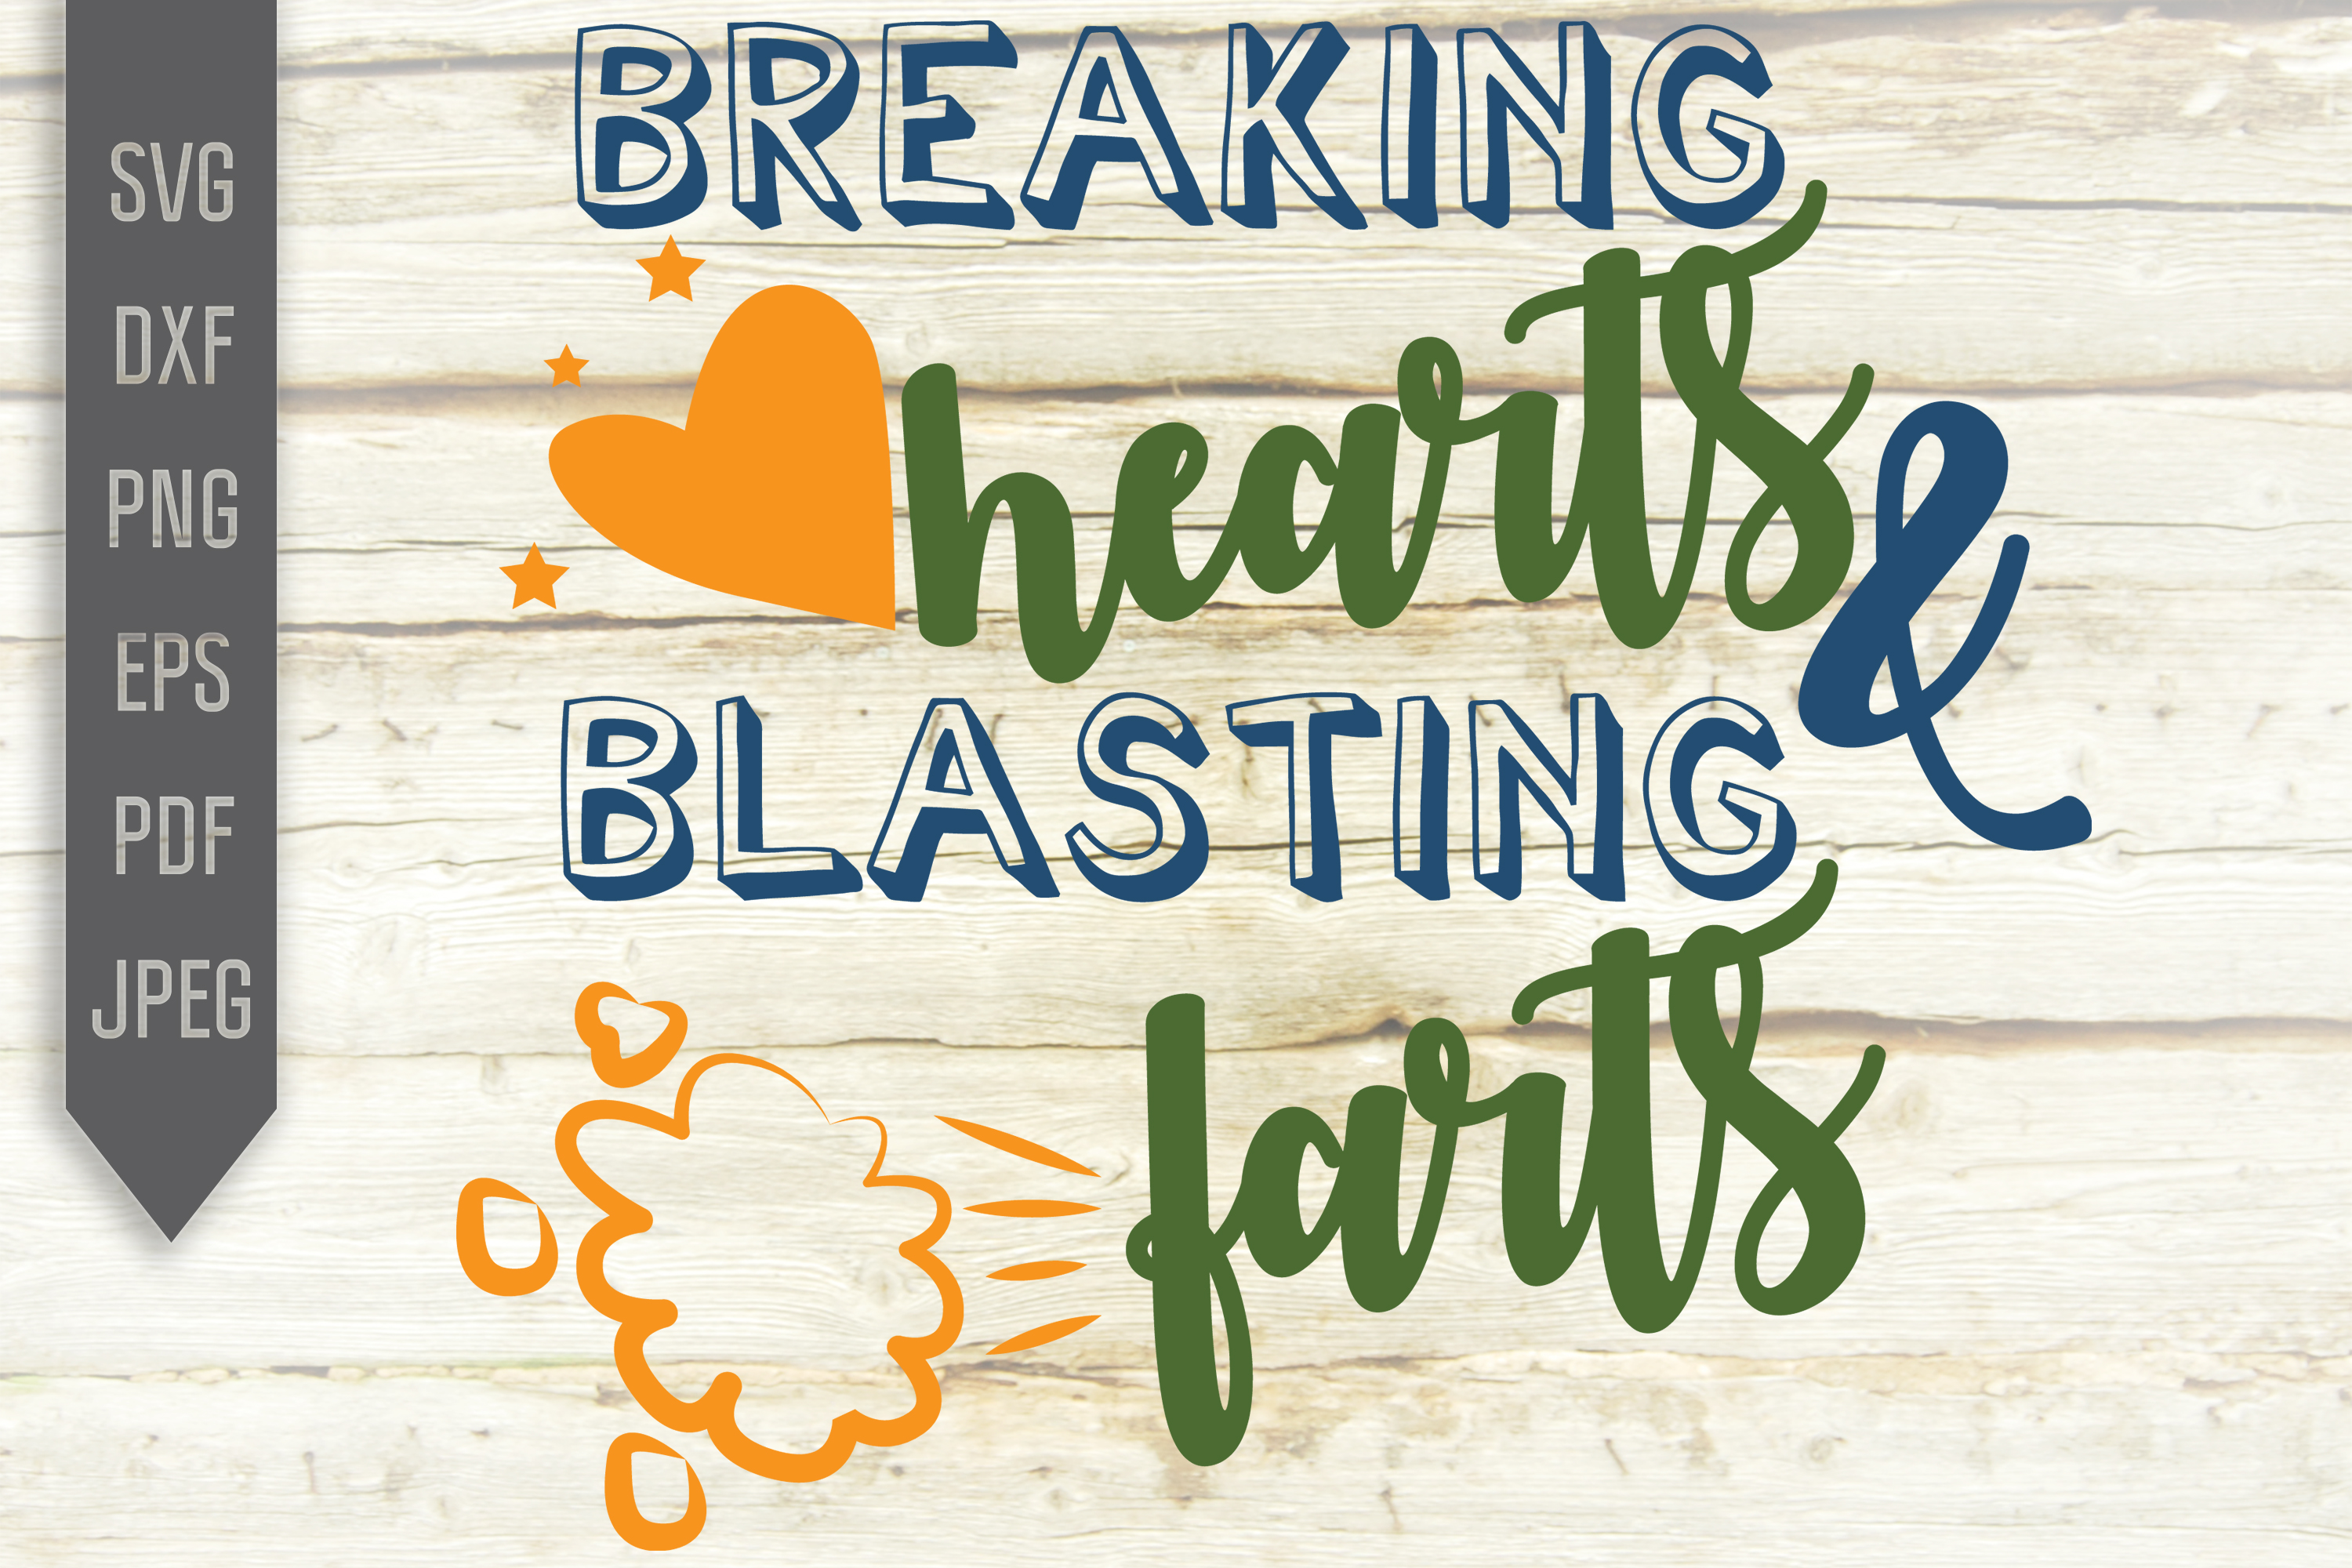 Download Free Breaking Hearts And Blasting Farts Svg Graphic By Svglaboratory for Cricut Explore, Silhouette and other cutting machines.